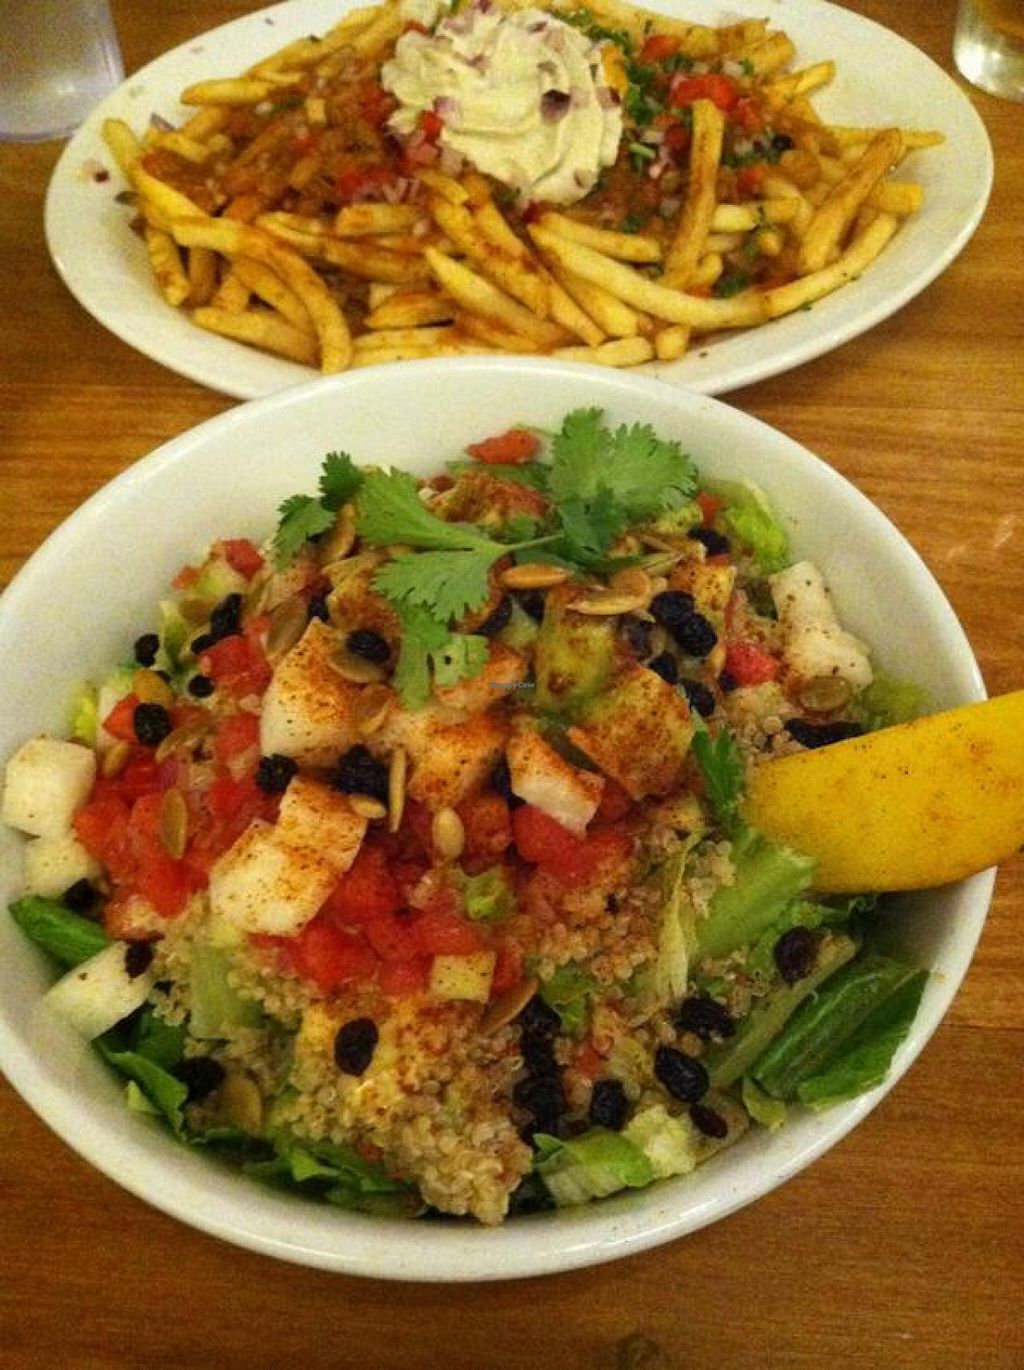 """Photo of Native Foods - Westwood  by <a href=""""/members/profile/Meggie%20and%20Ben"""">Meggie and Ben</a> <br/>Ensalada Azteca <br/> December 1, 2014  - <a href='/contact/abuse/image/1728/87001'>Report</a>"""